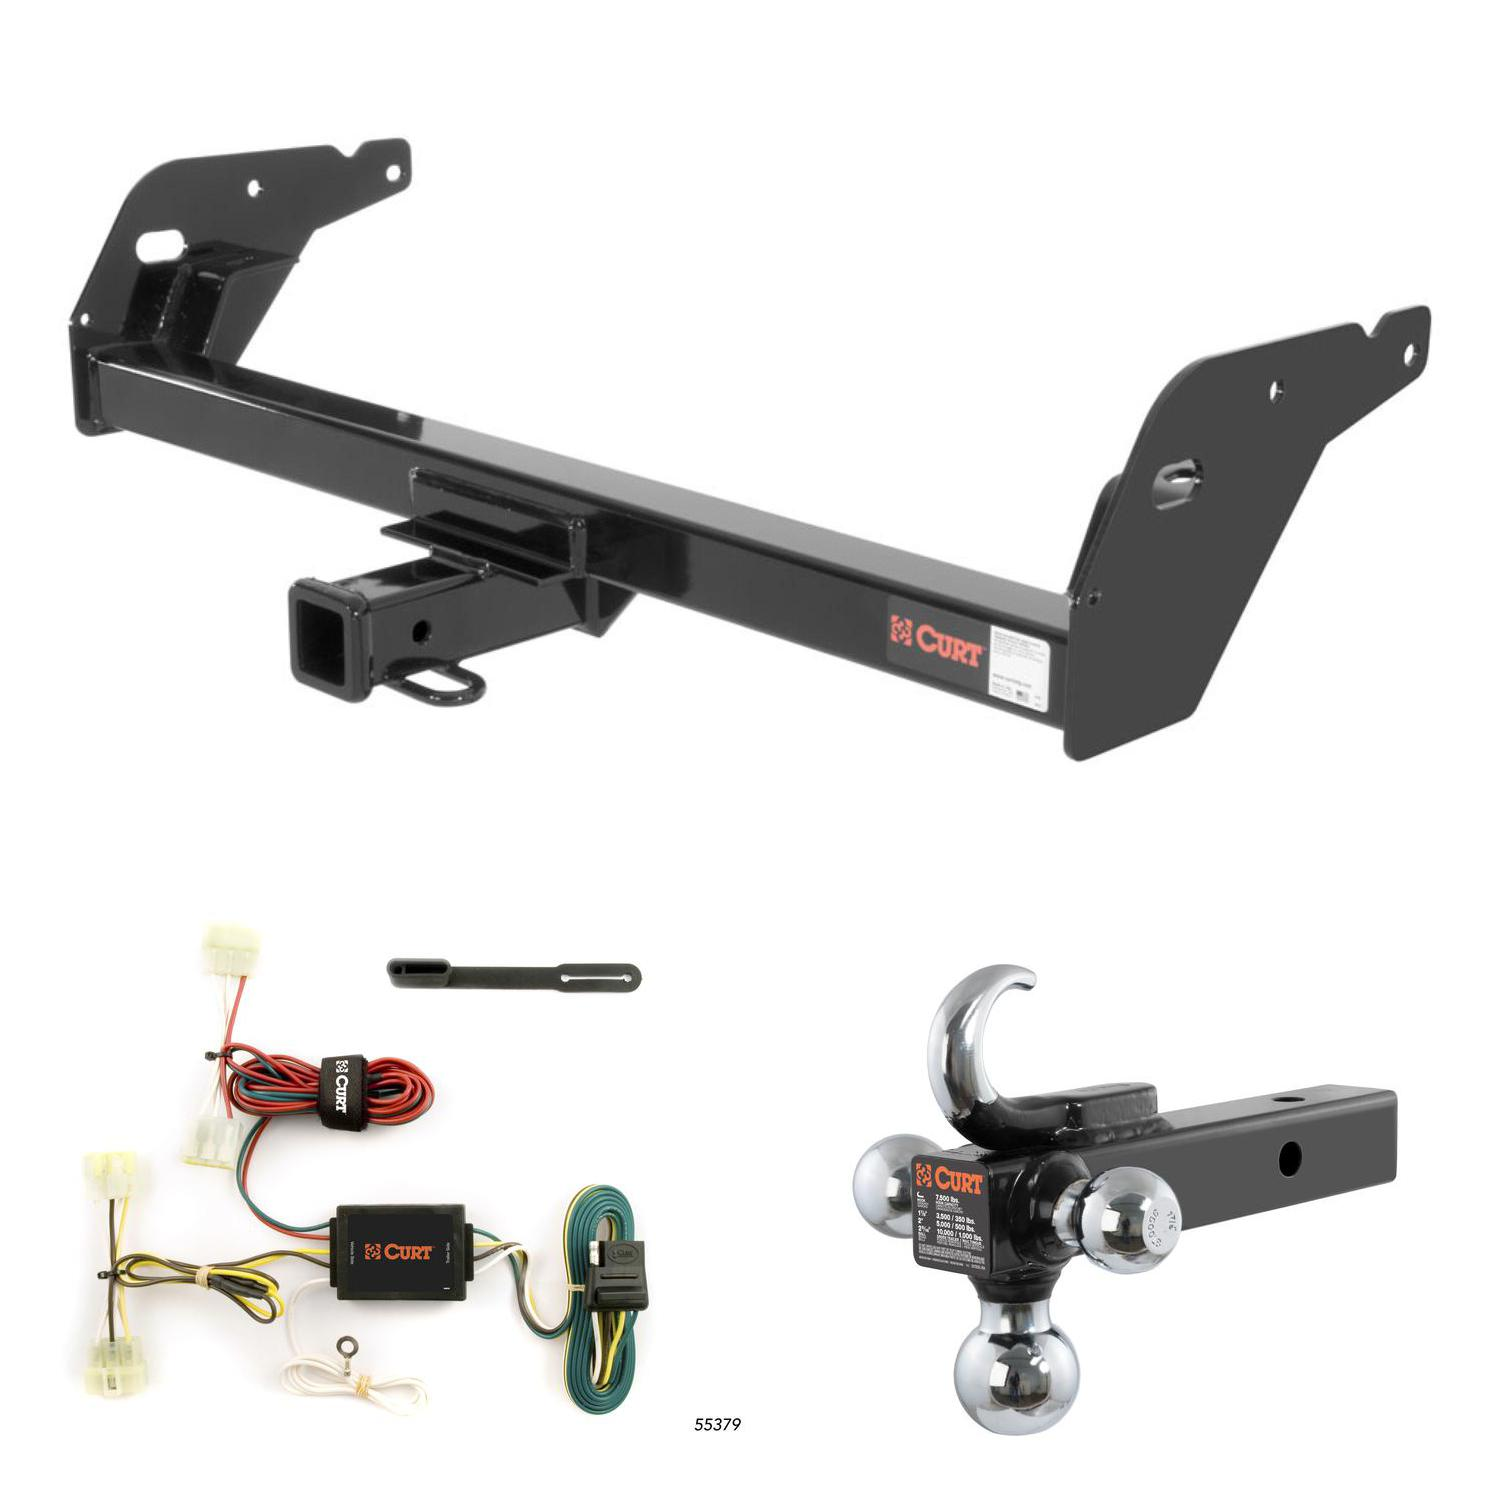 hight resolution of curt trailer hitch wiring w tow hook ball mount for 95 04 toyota tacoma